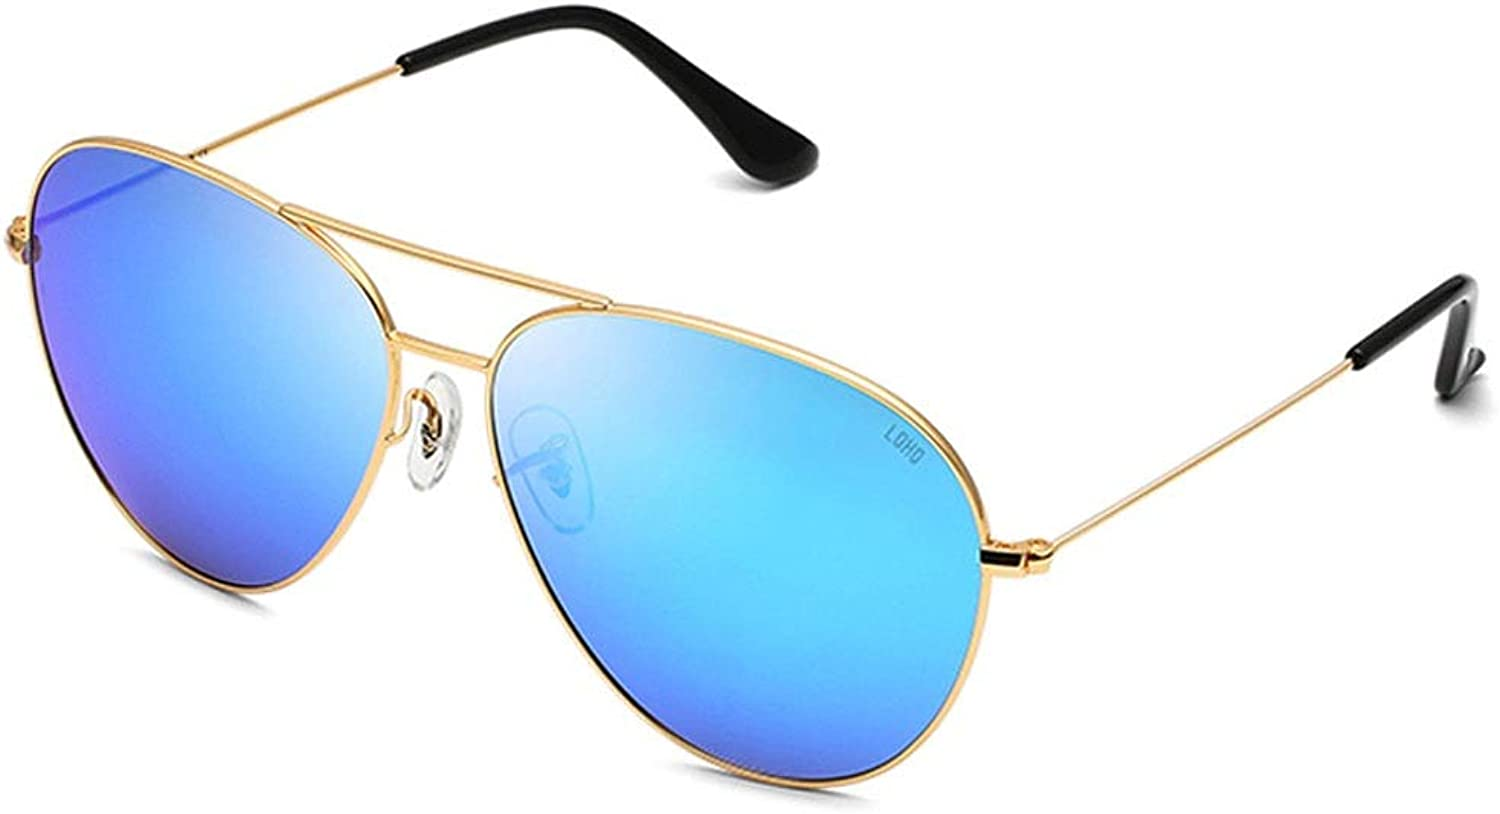 LFFTYJ Sunglasses, Pilot Polarized Sunglasses Round Face Personality Sunglasses Driving Mirror Fashion Classic bluee  Unisex Give him (her) a Good Summer Gift (color   B)